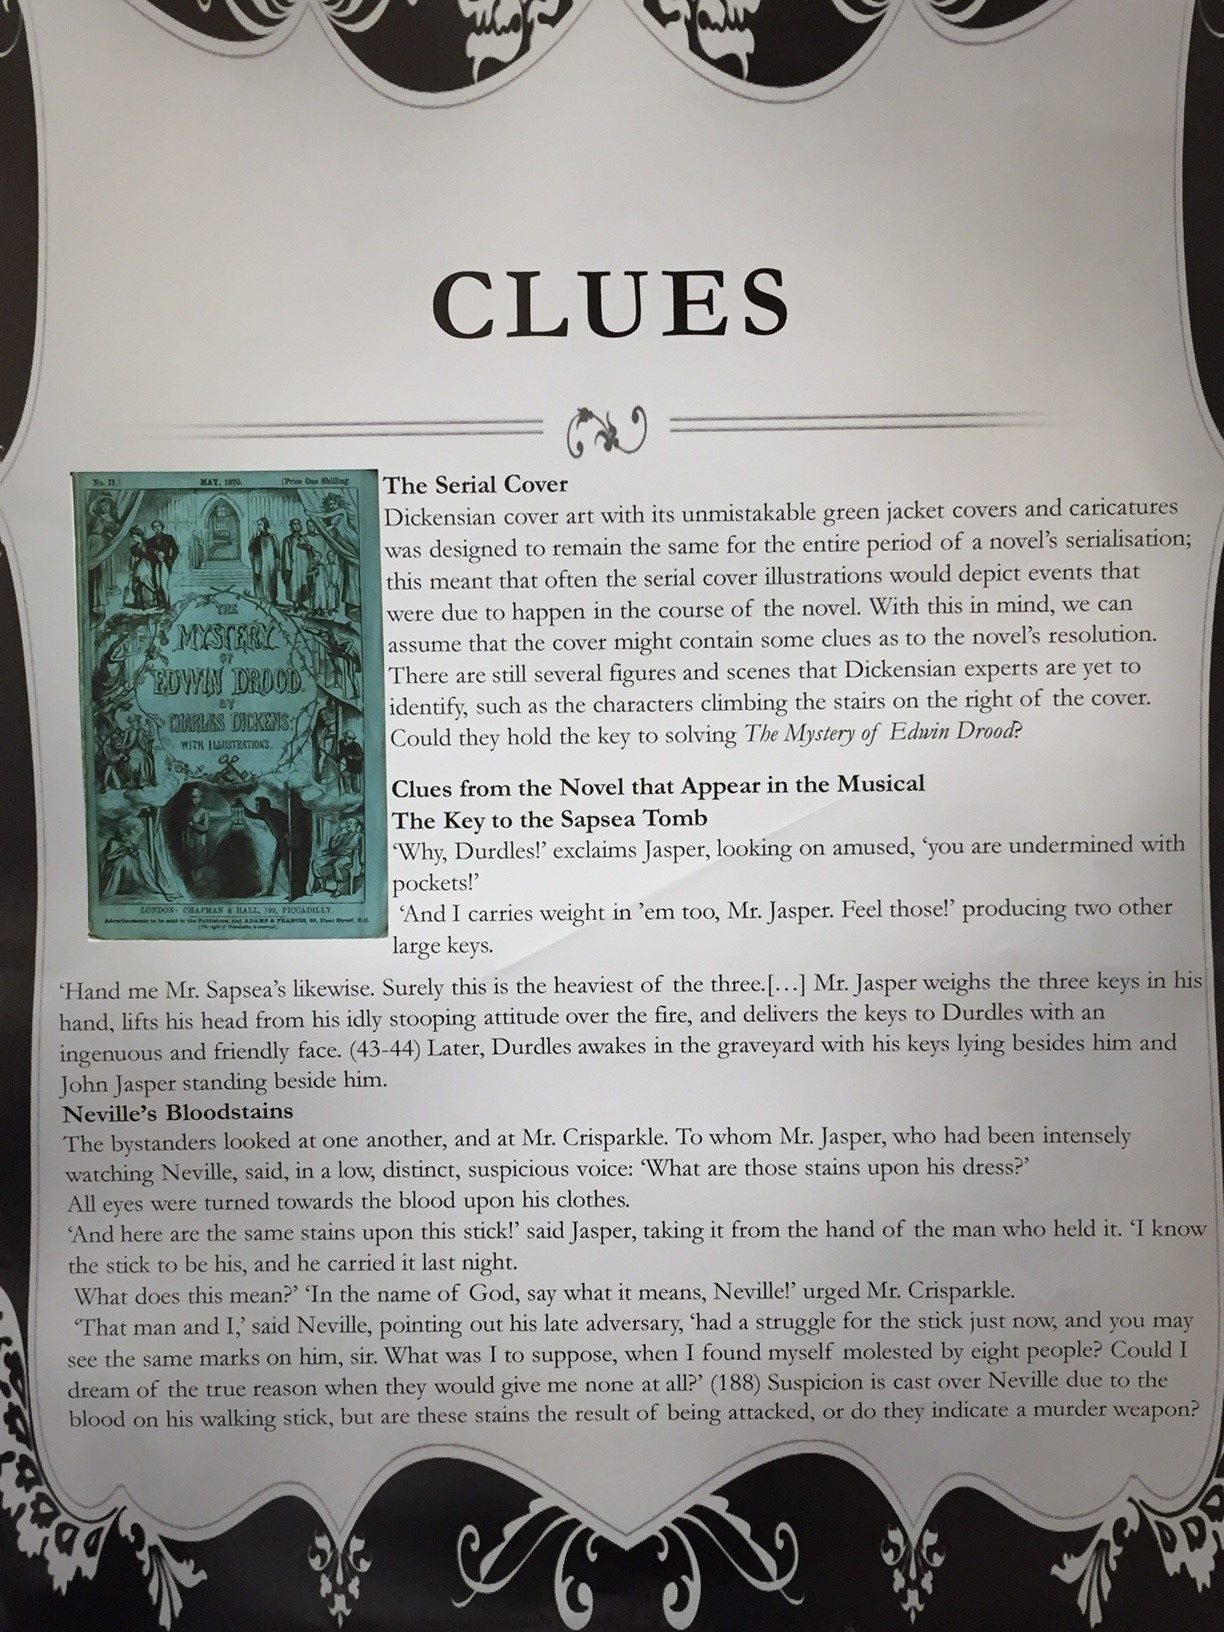 A section from the programme which sets out the clues within the show.